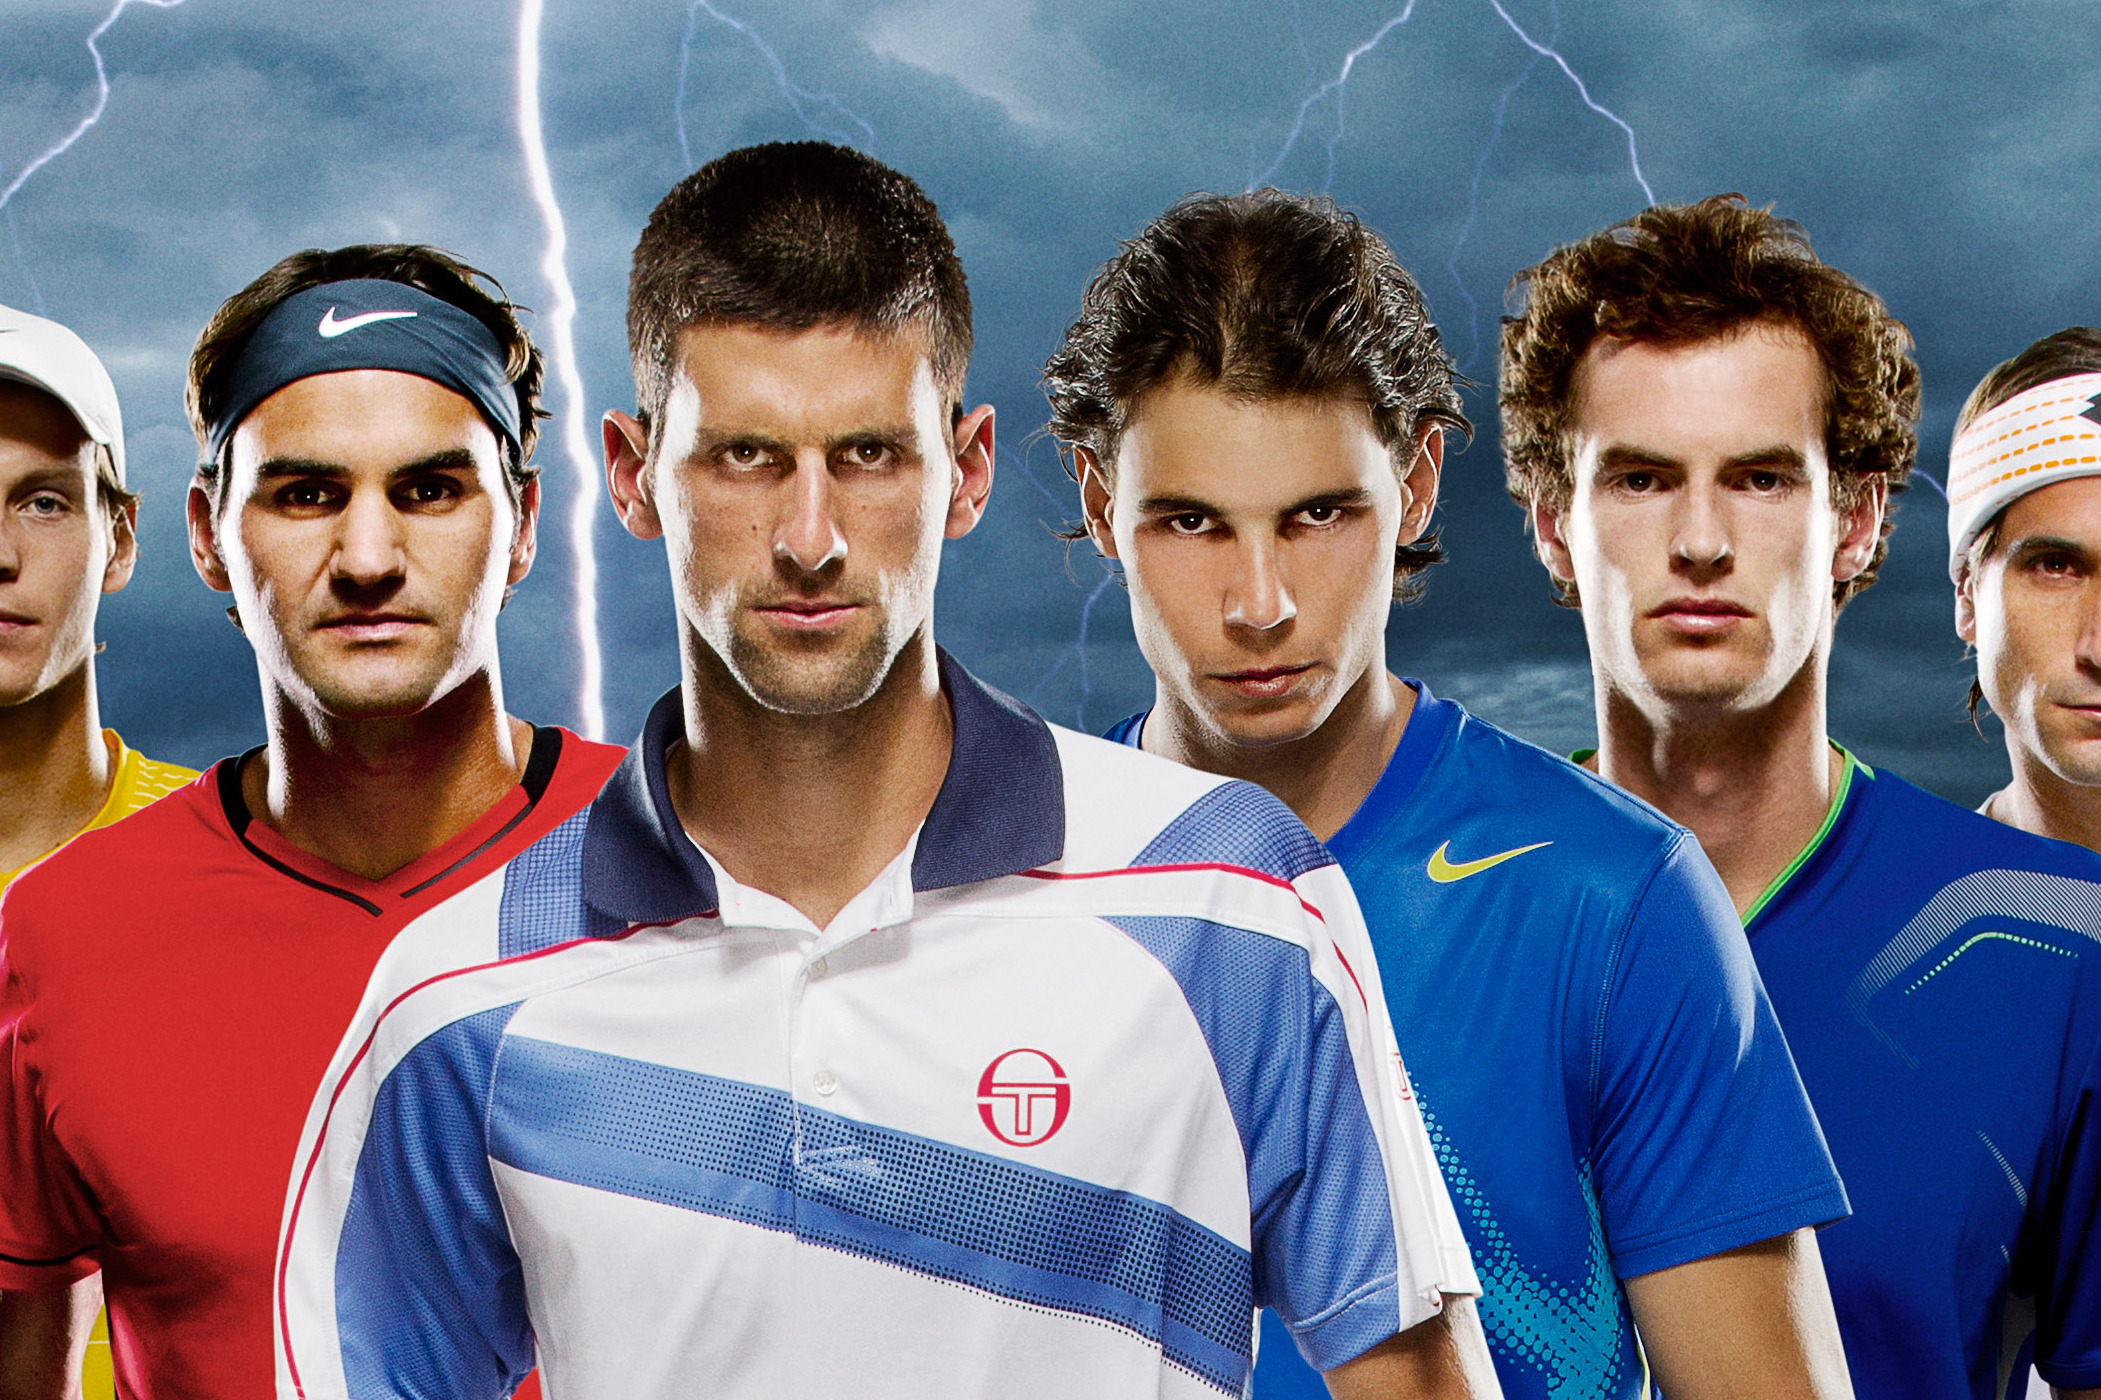 Roger Federer Rafael Nadal Novak Djokovic And Andy Murray Miami Preview Bleacher Report Latest News Videos And Highlights